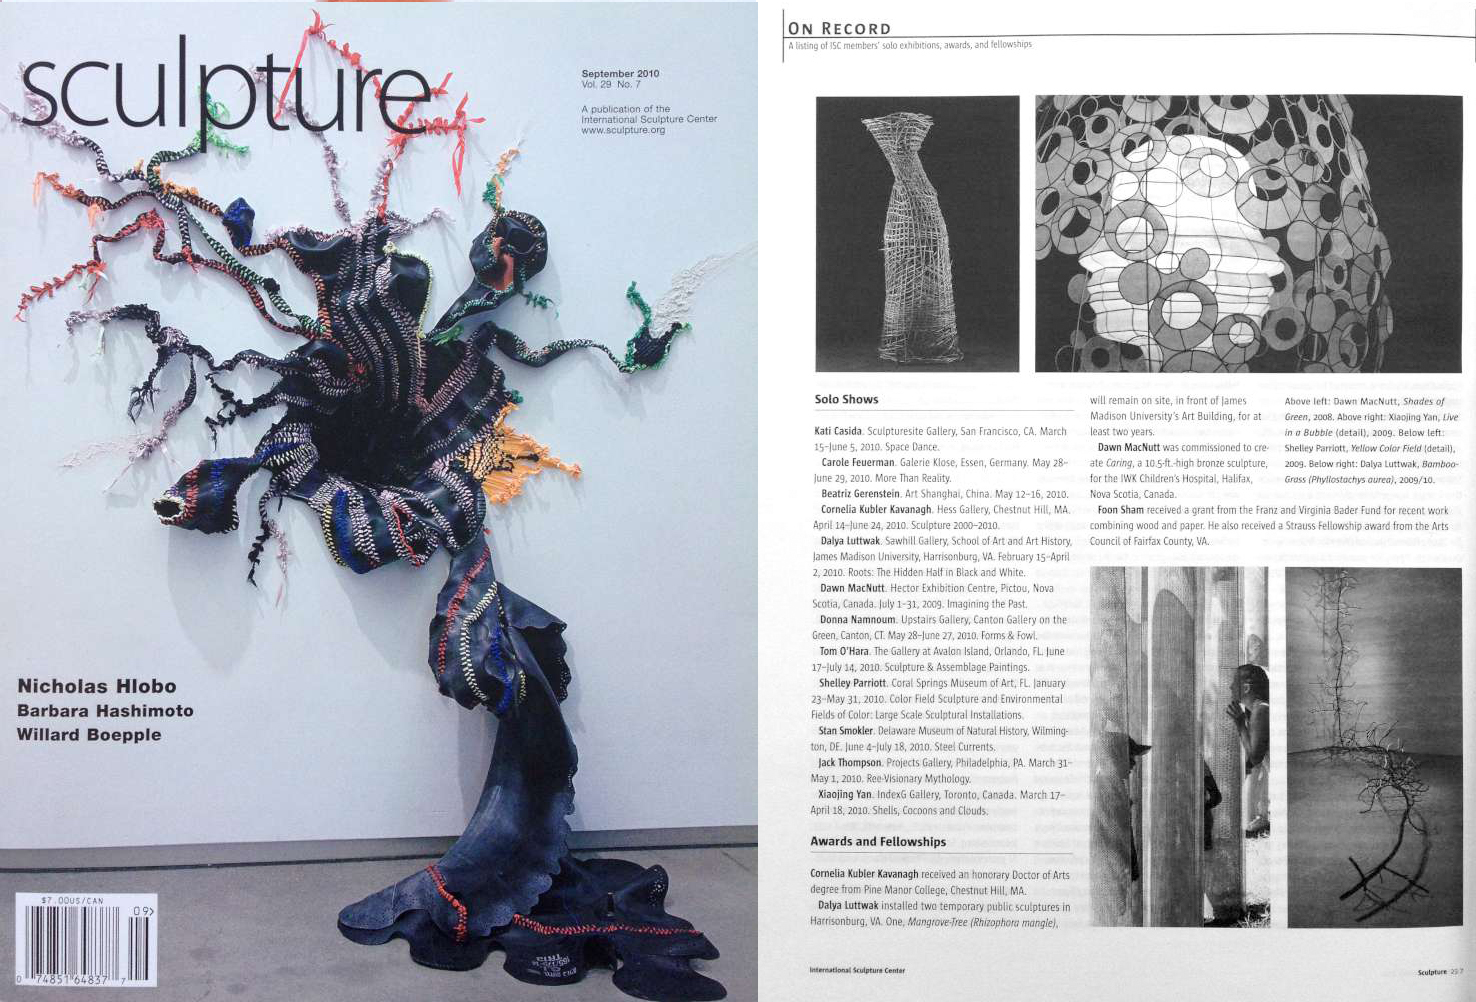 sculpture magazine_2010_09